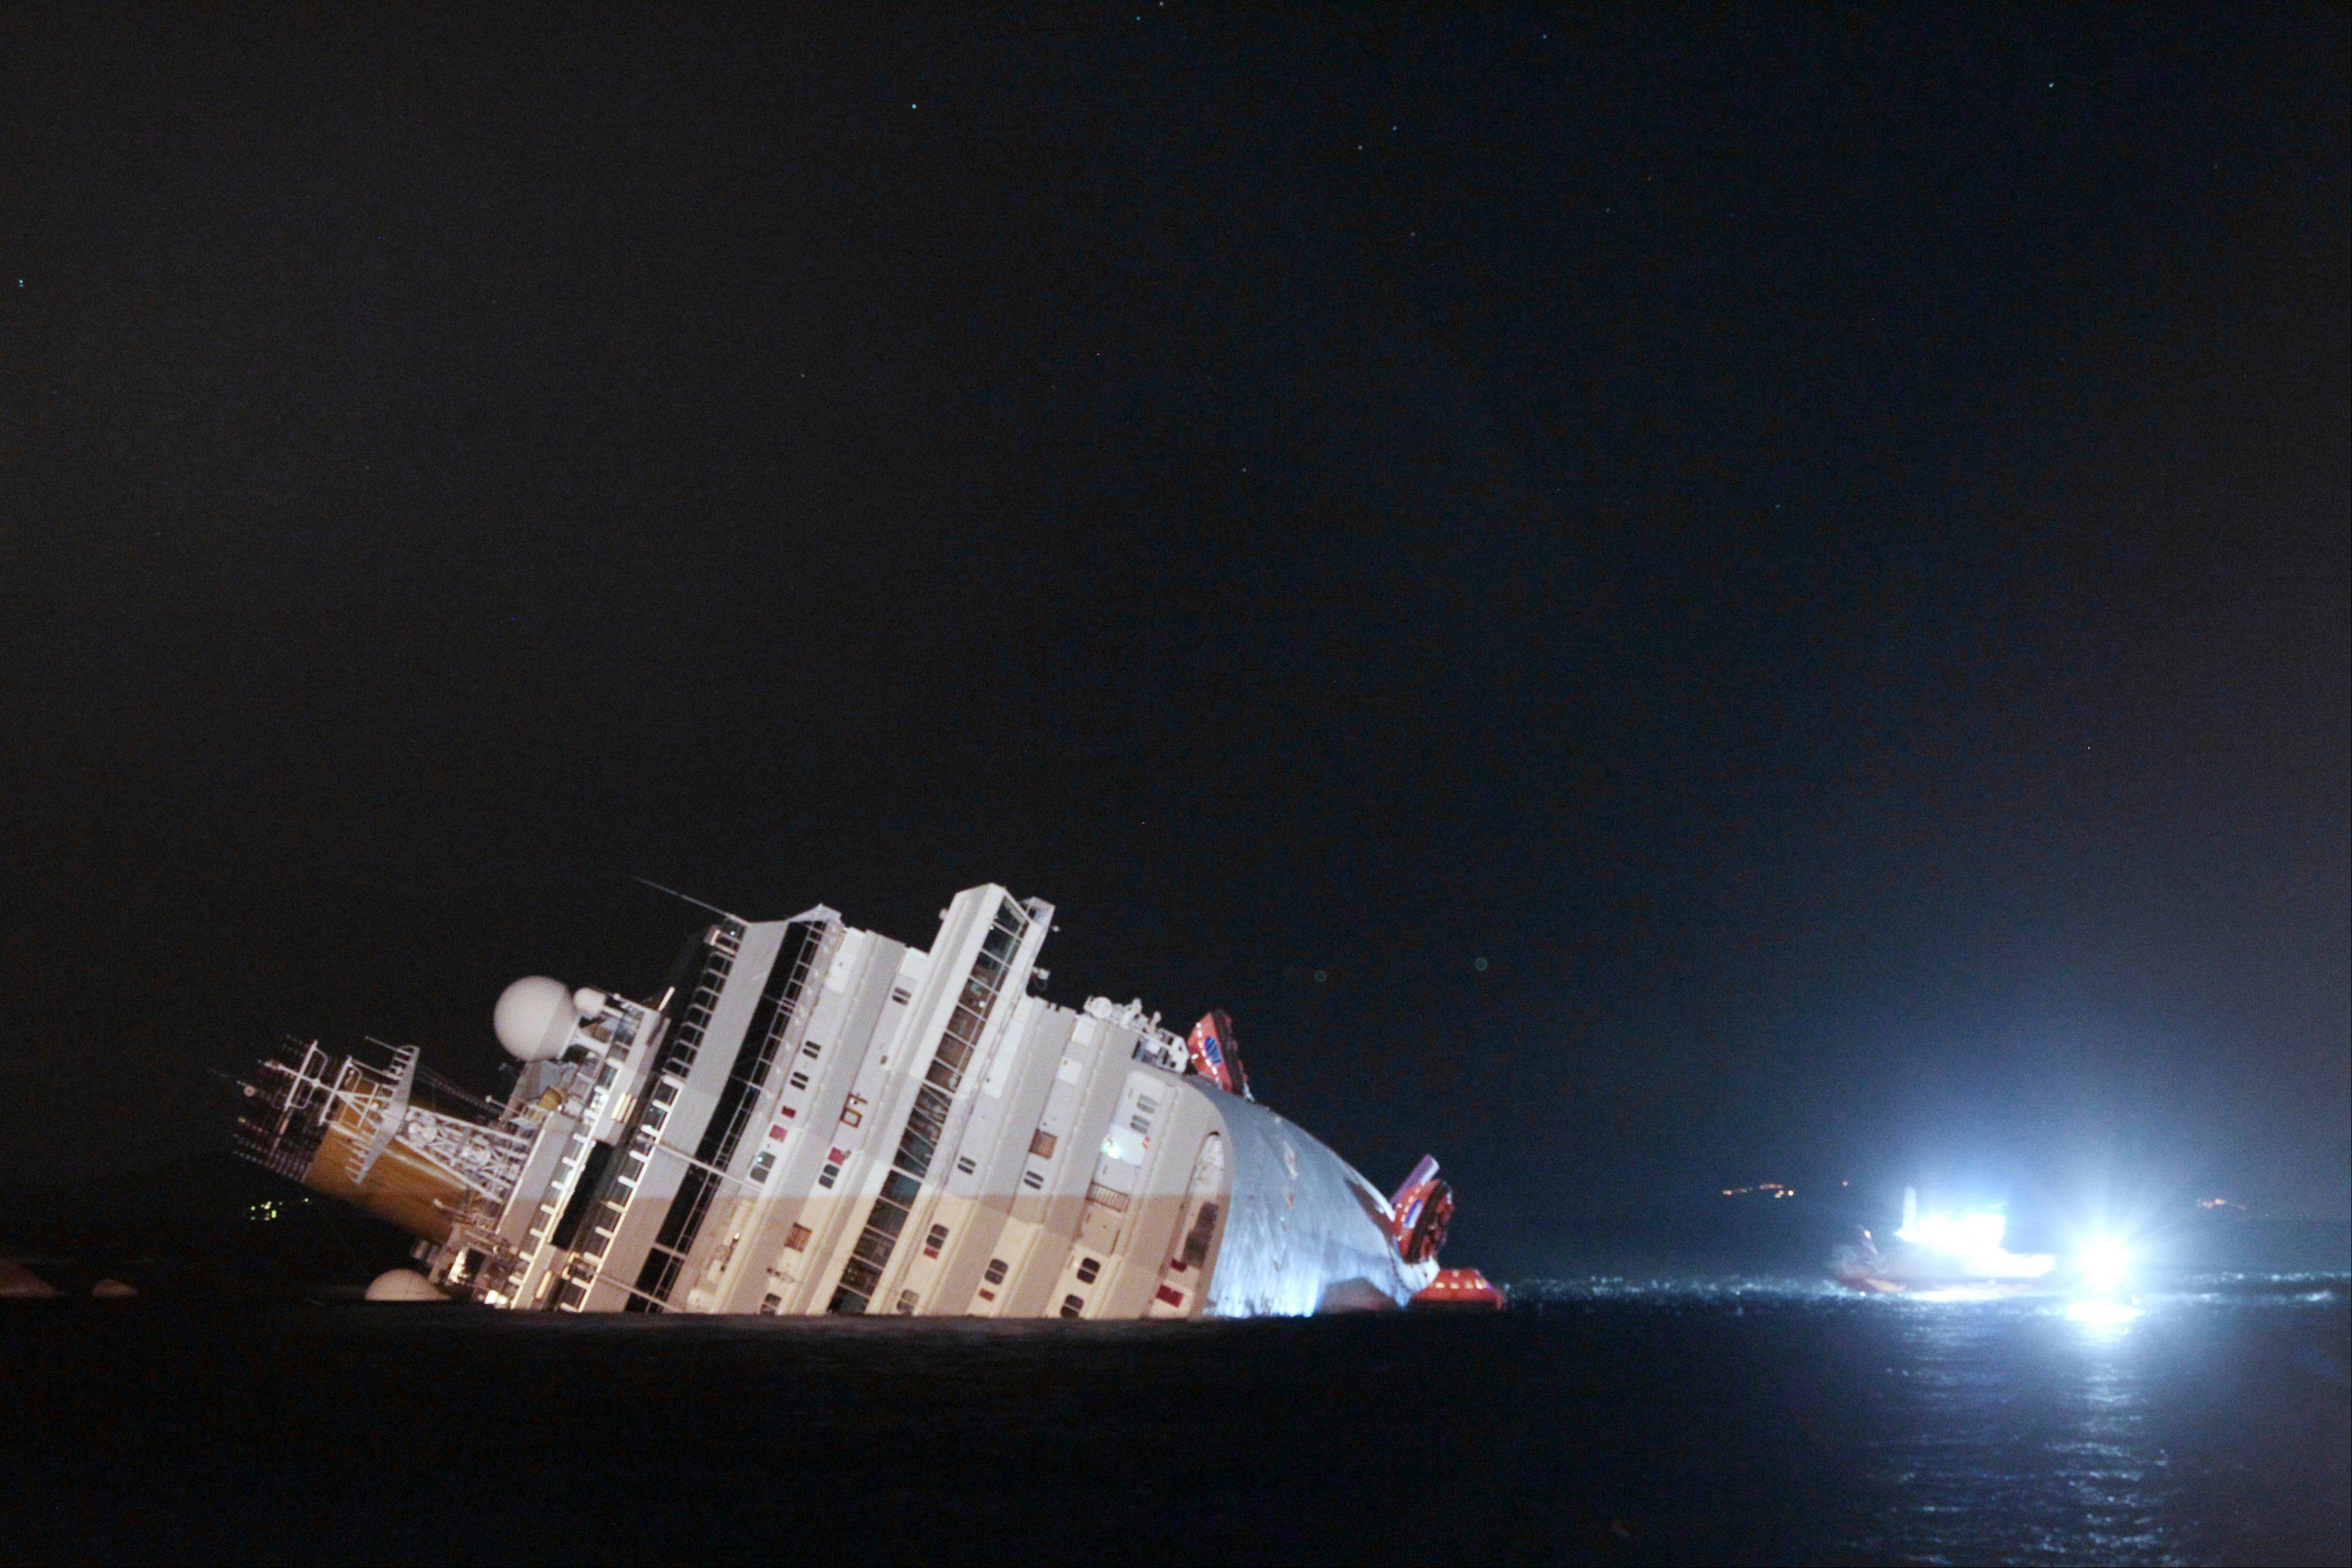 The luxury cruise ship Costa Concordia leans on its side after running aground near the tiny Tuscan island of Giglio, Italy, on Jan. 14, 2012.